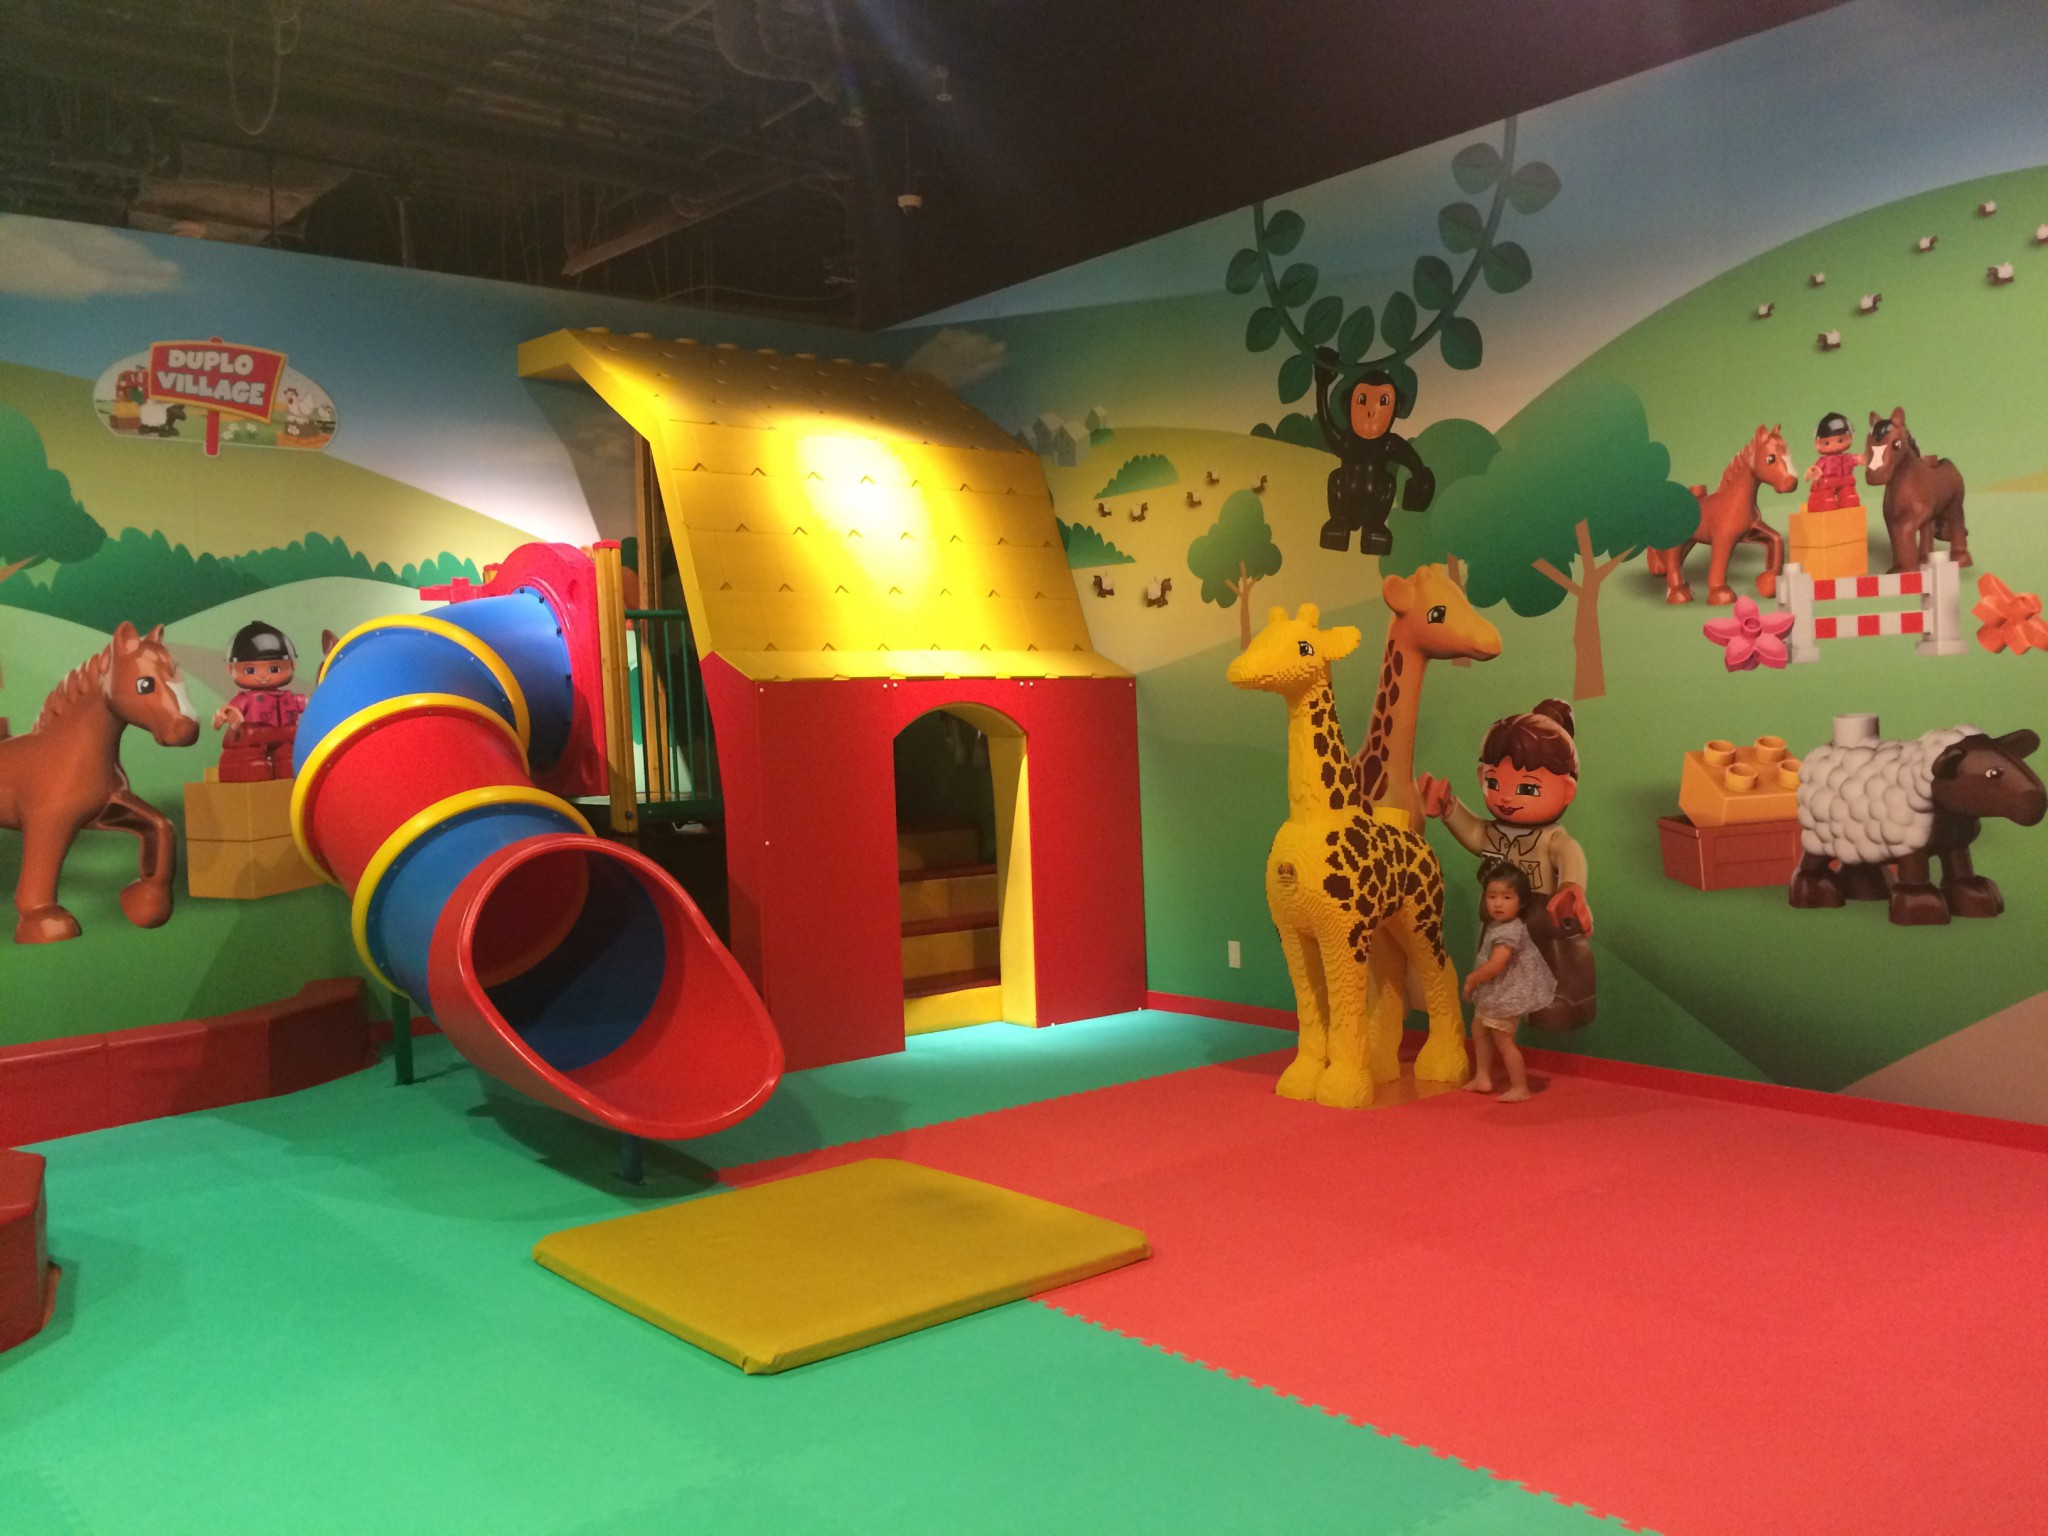 Top 11 Re mended Indoor Playcenters in Tokyo